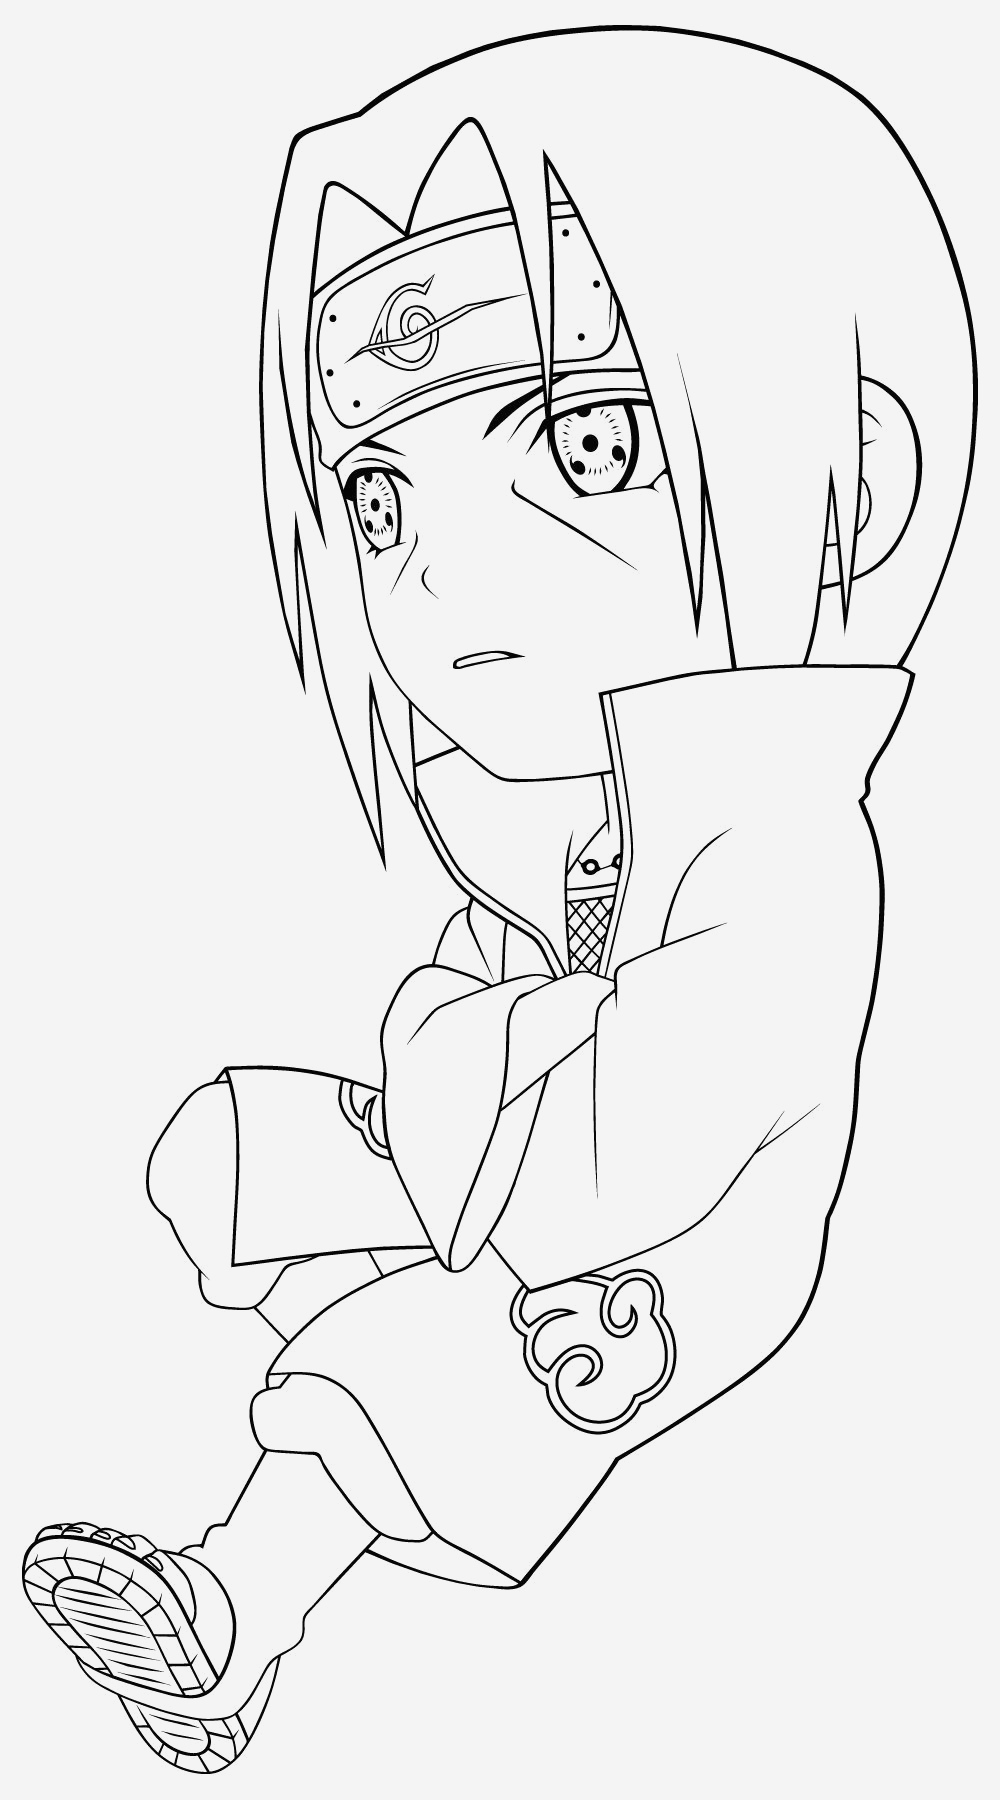 Coloriage Naruto Sasuke Fresh the Best Free Naruto Coloring Page Images Download From 358 Of Coloriage Naruto Sasuke